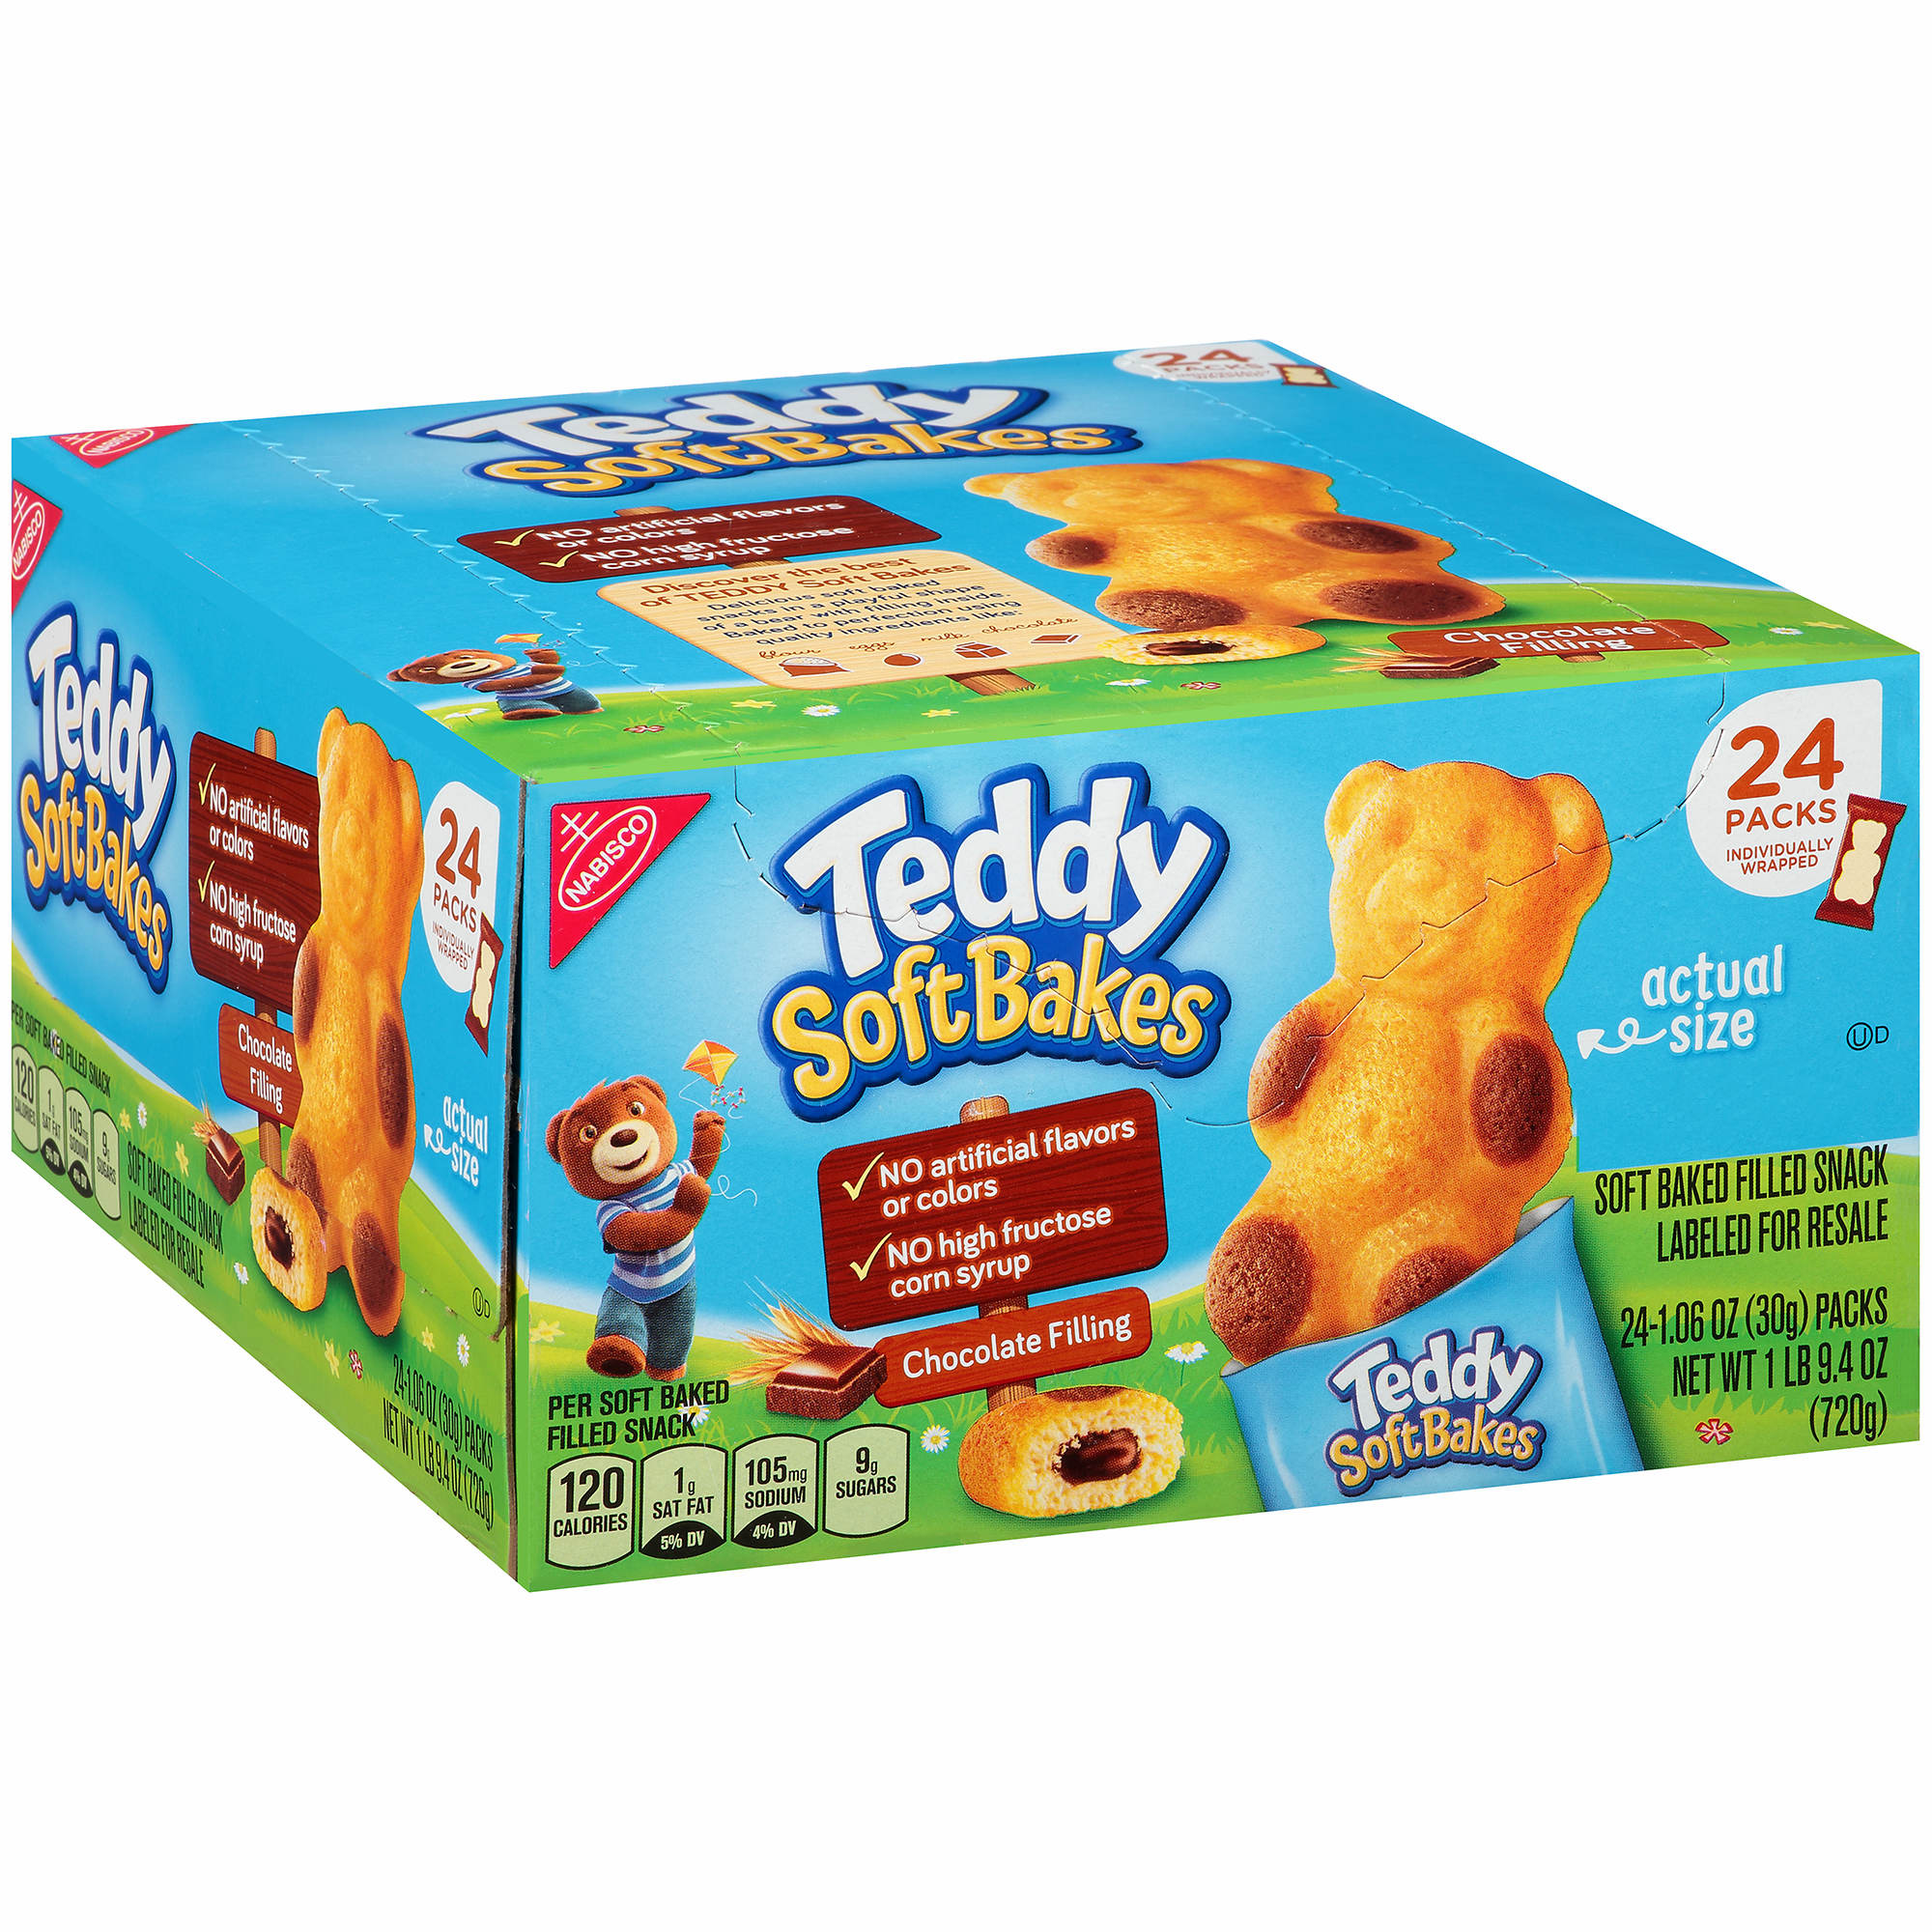 Nabisco Teddy Soft Bakes Chocolate Filling Snacks, 24 ct. - BJs ...